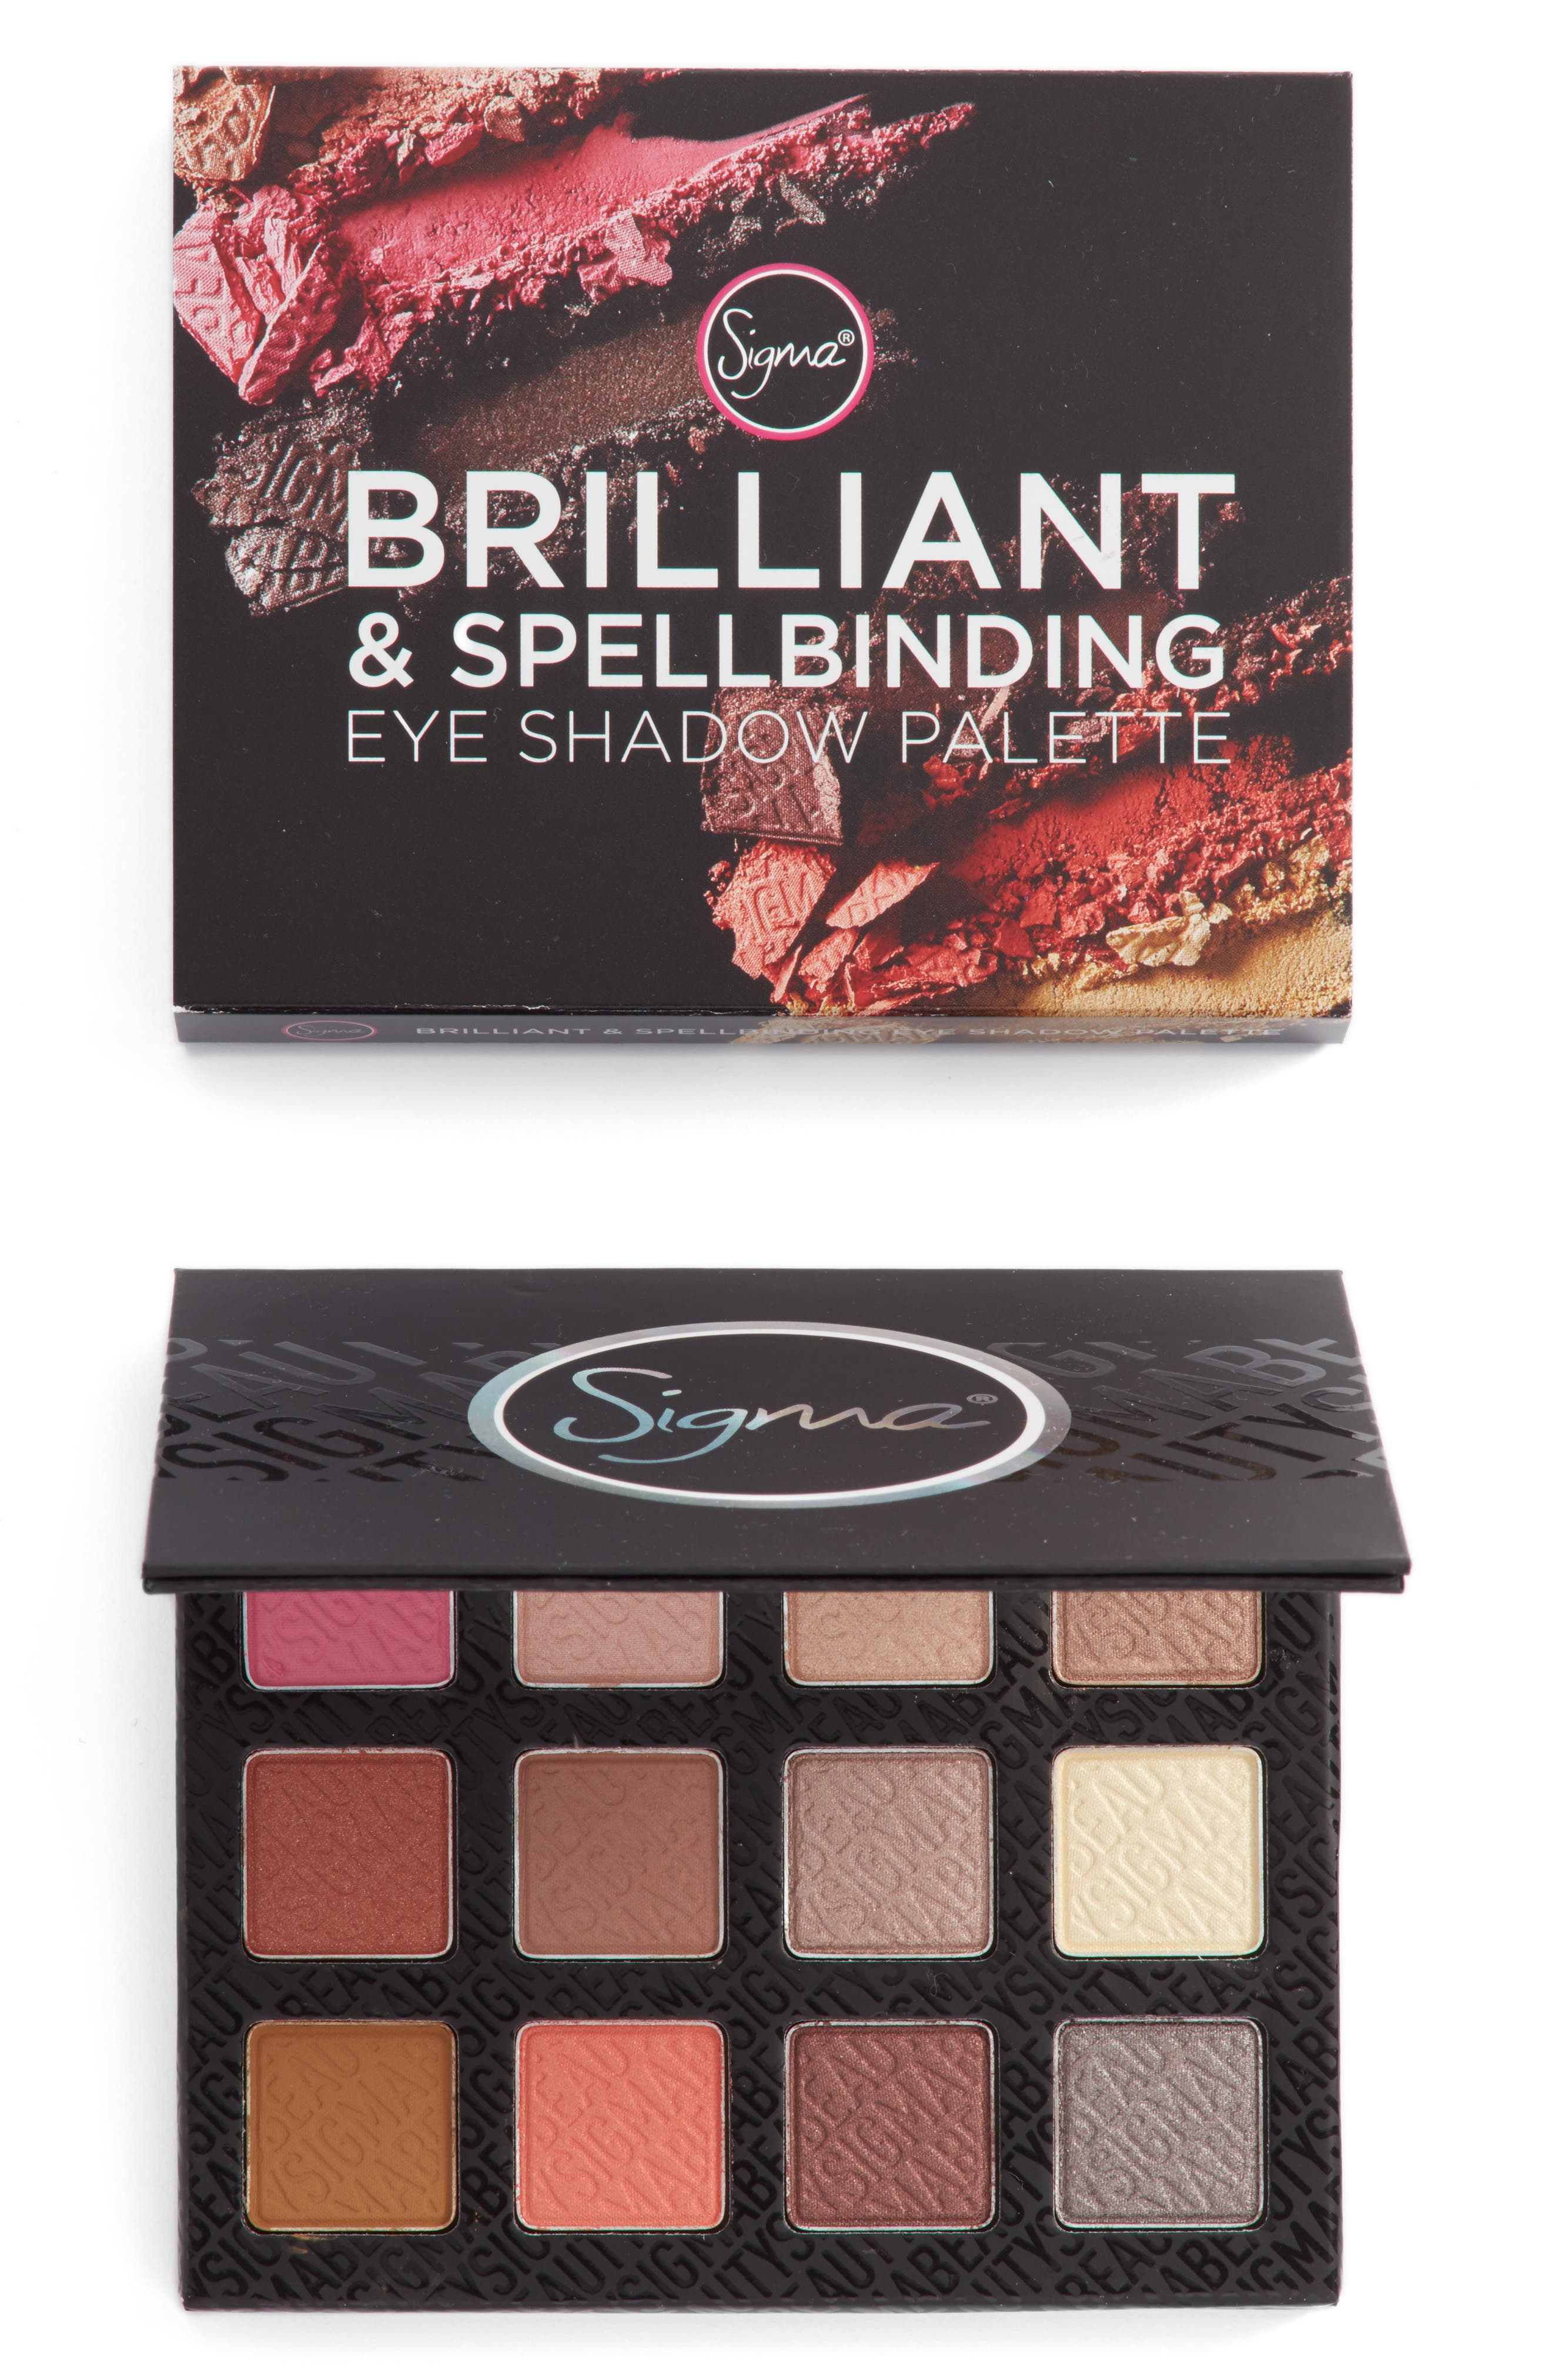 Sigma Beauty Brilliant & Spellbinding Eyeshadow Palette ($39 Value)